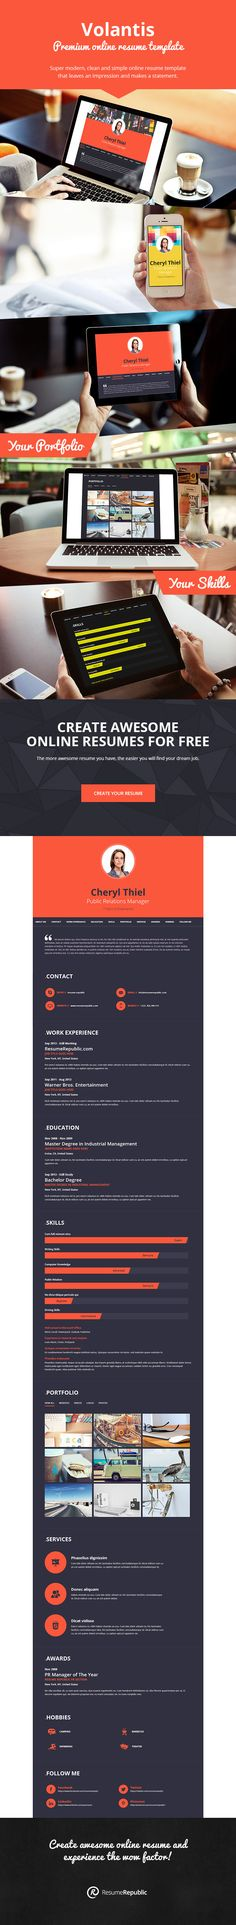 Clean \ simple corporate online resume template with vertical - online resume templates